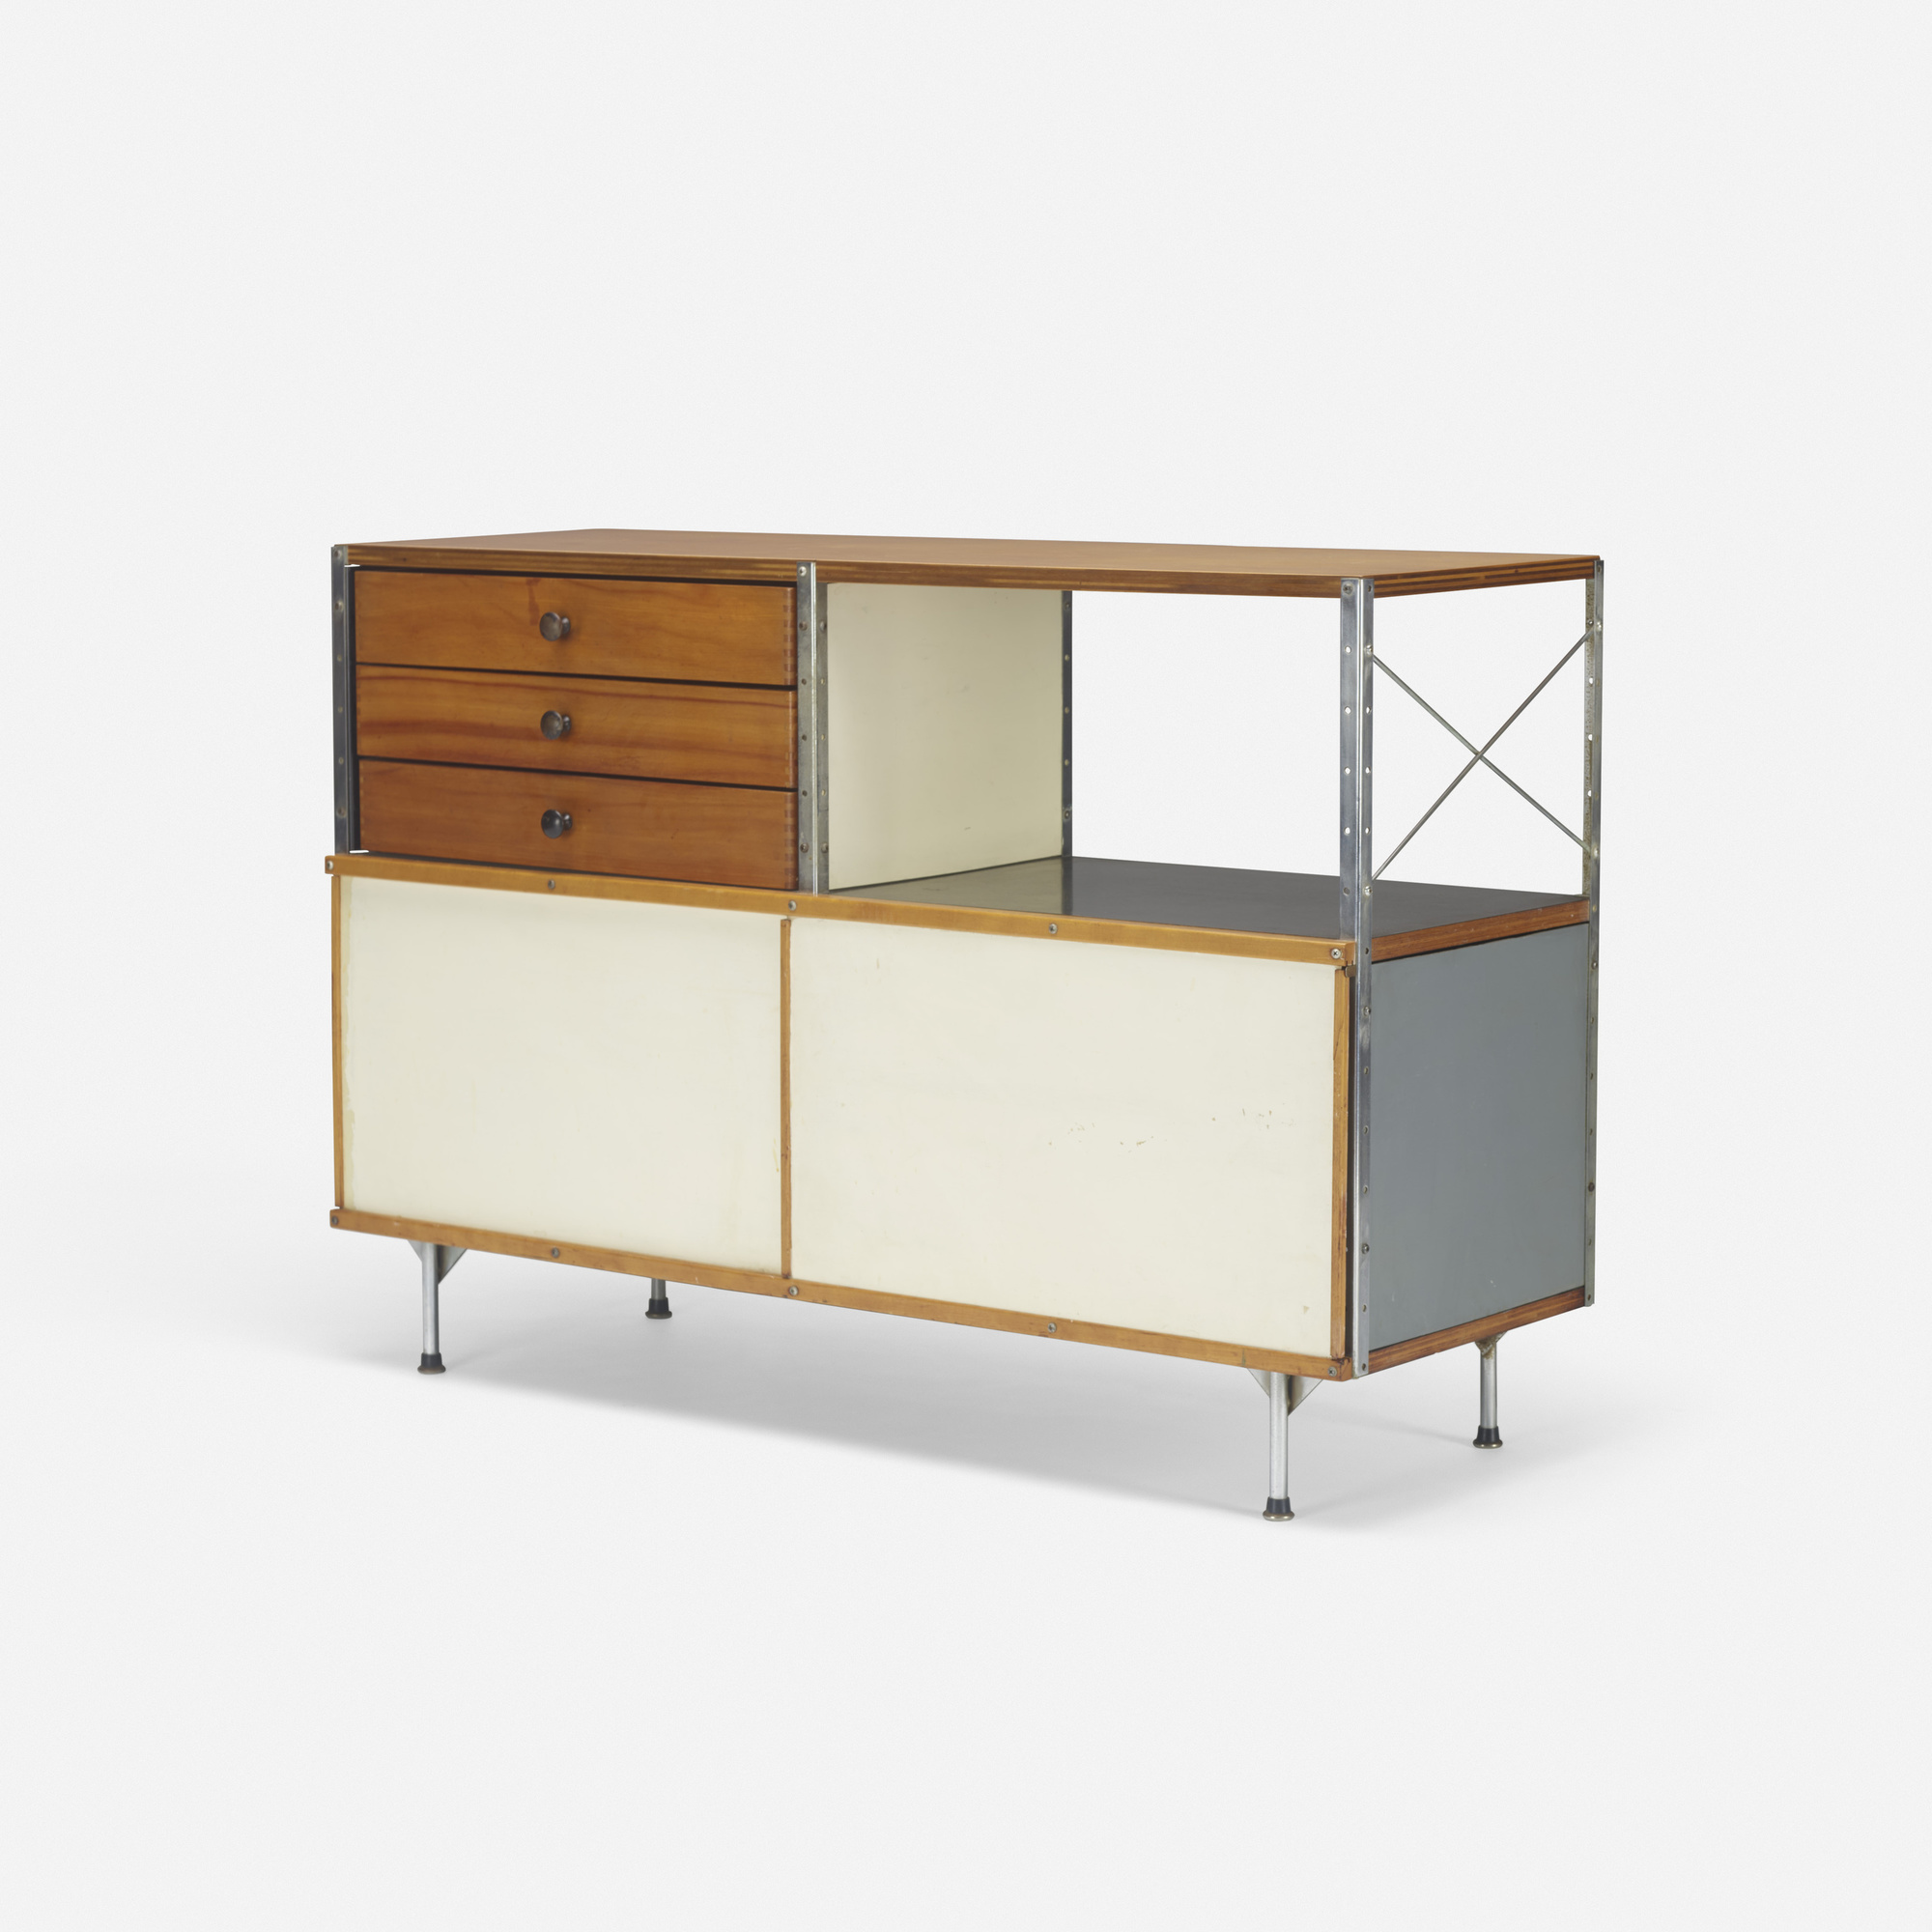 186: Charles and Ray Eames / ESU 200-N (1 of 3)